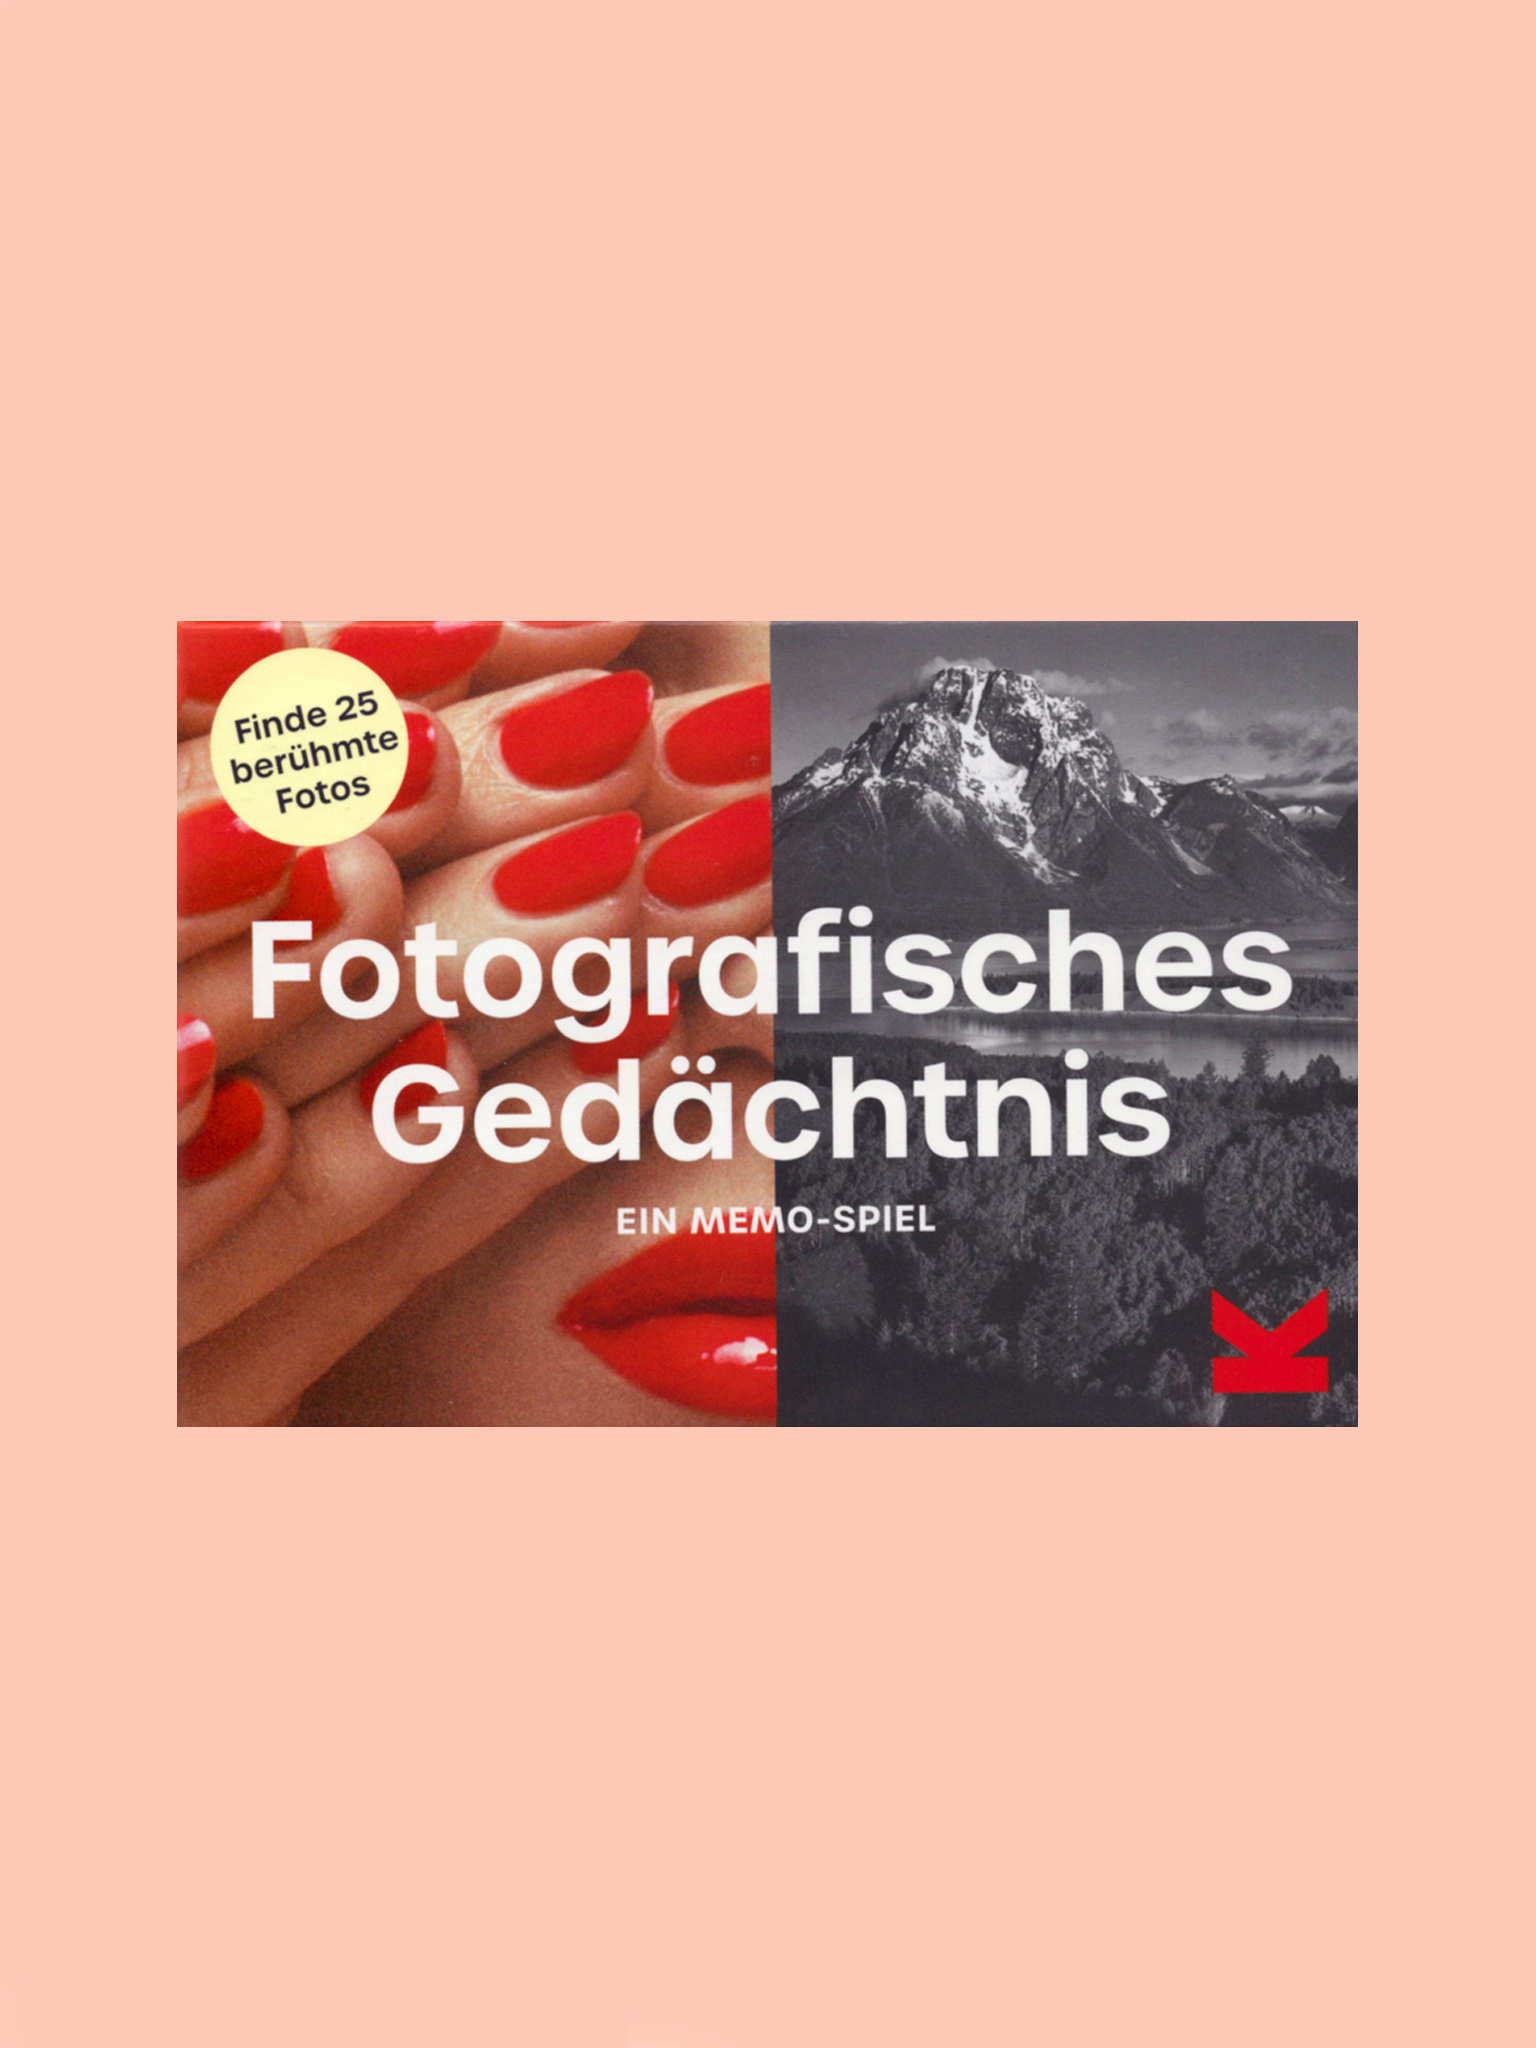 Laurence King Fotografisches Gedächtnis Memo